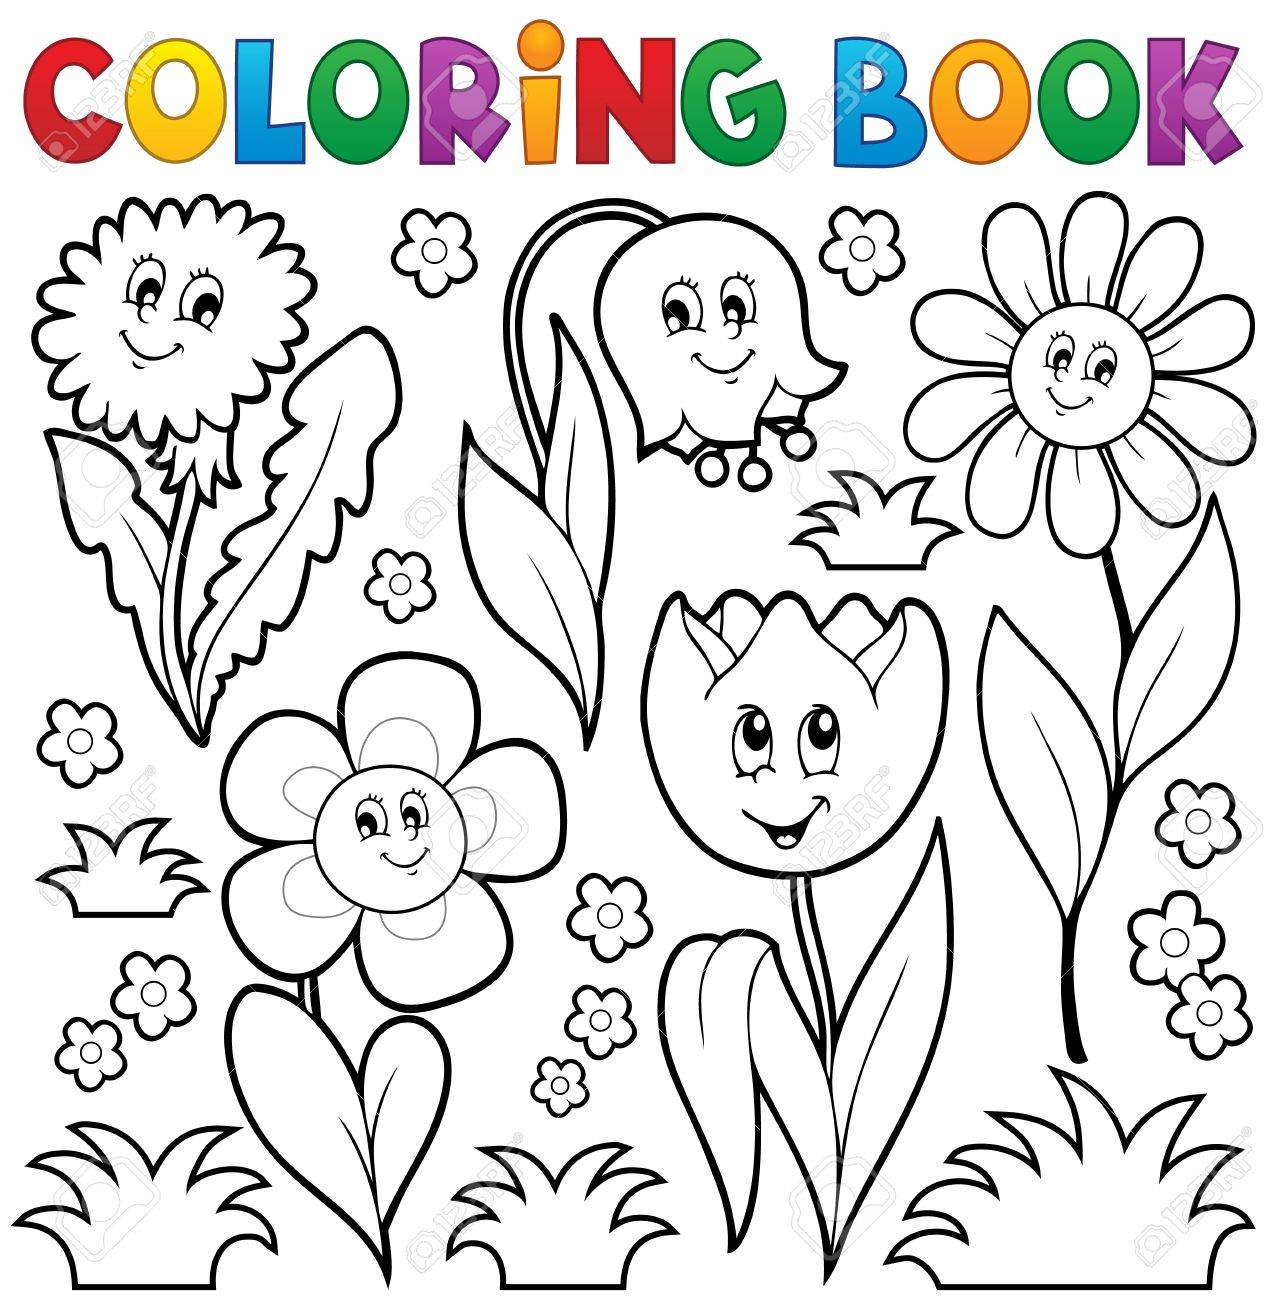 - Coloring Book With Flower Theme 6 - Eps10 Vector Illustration